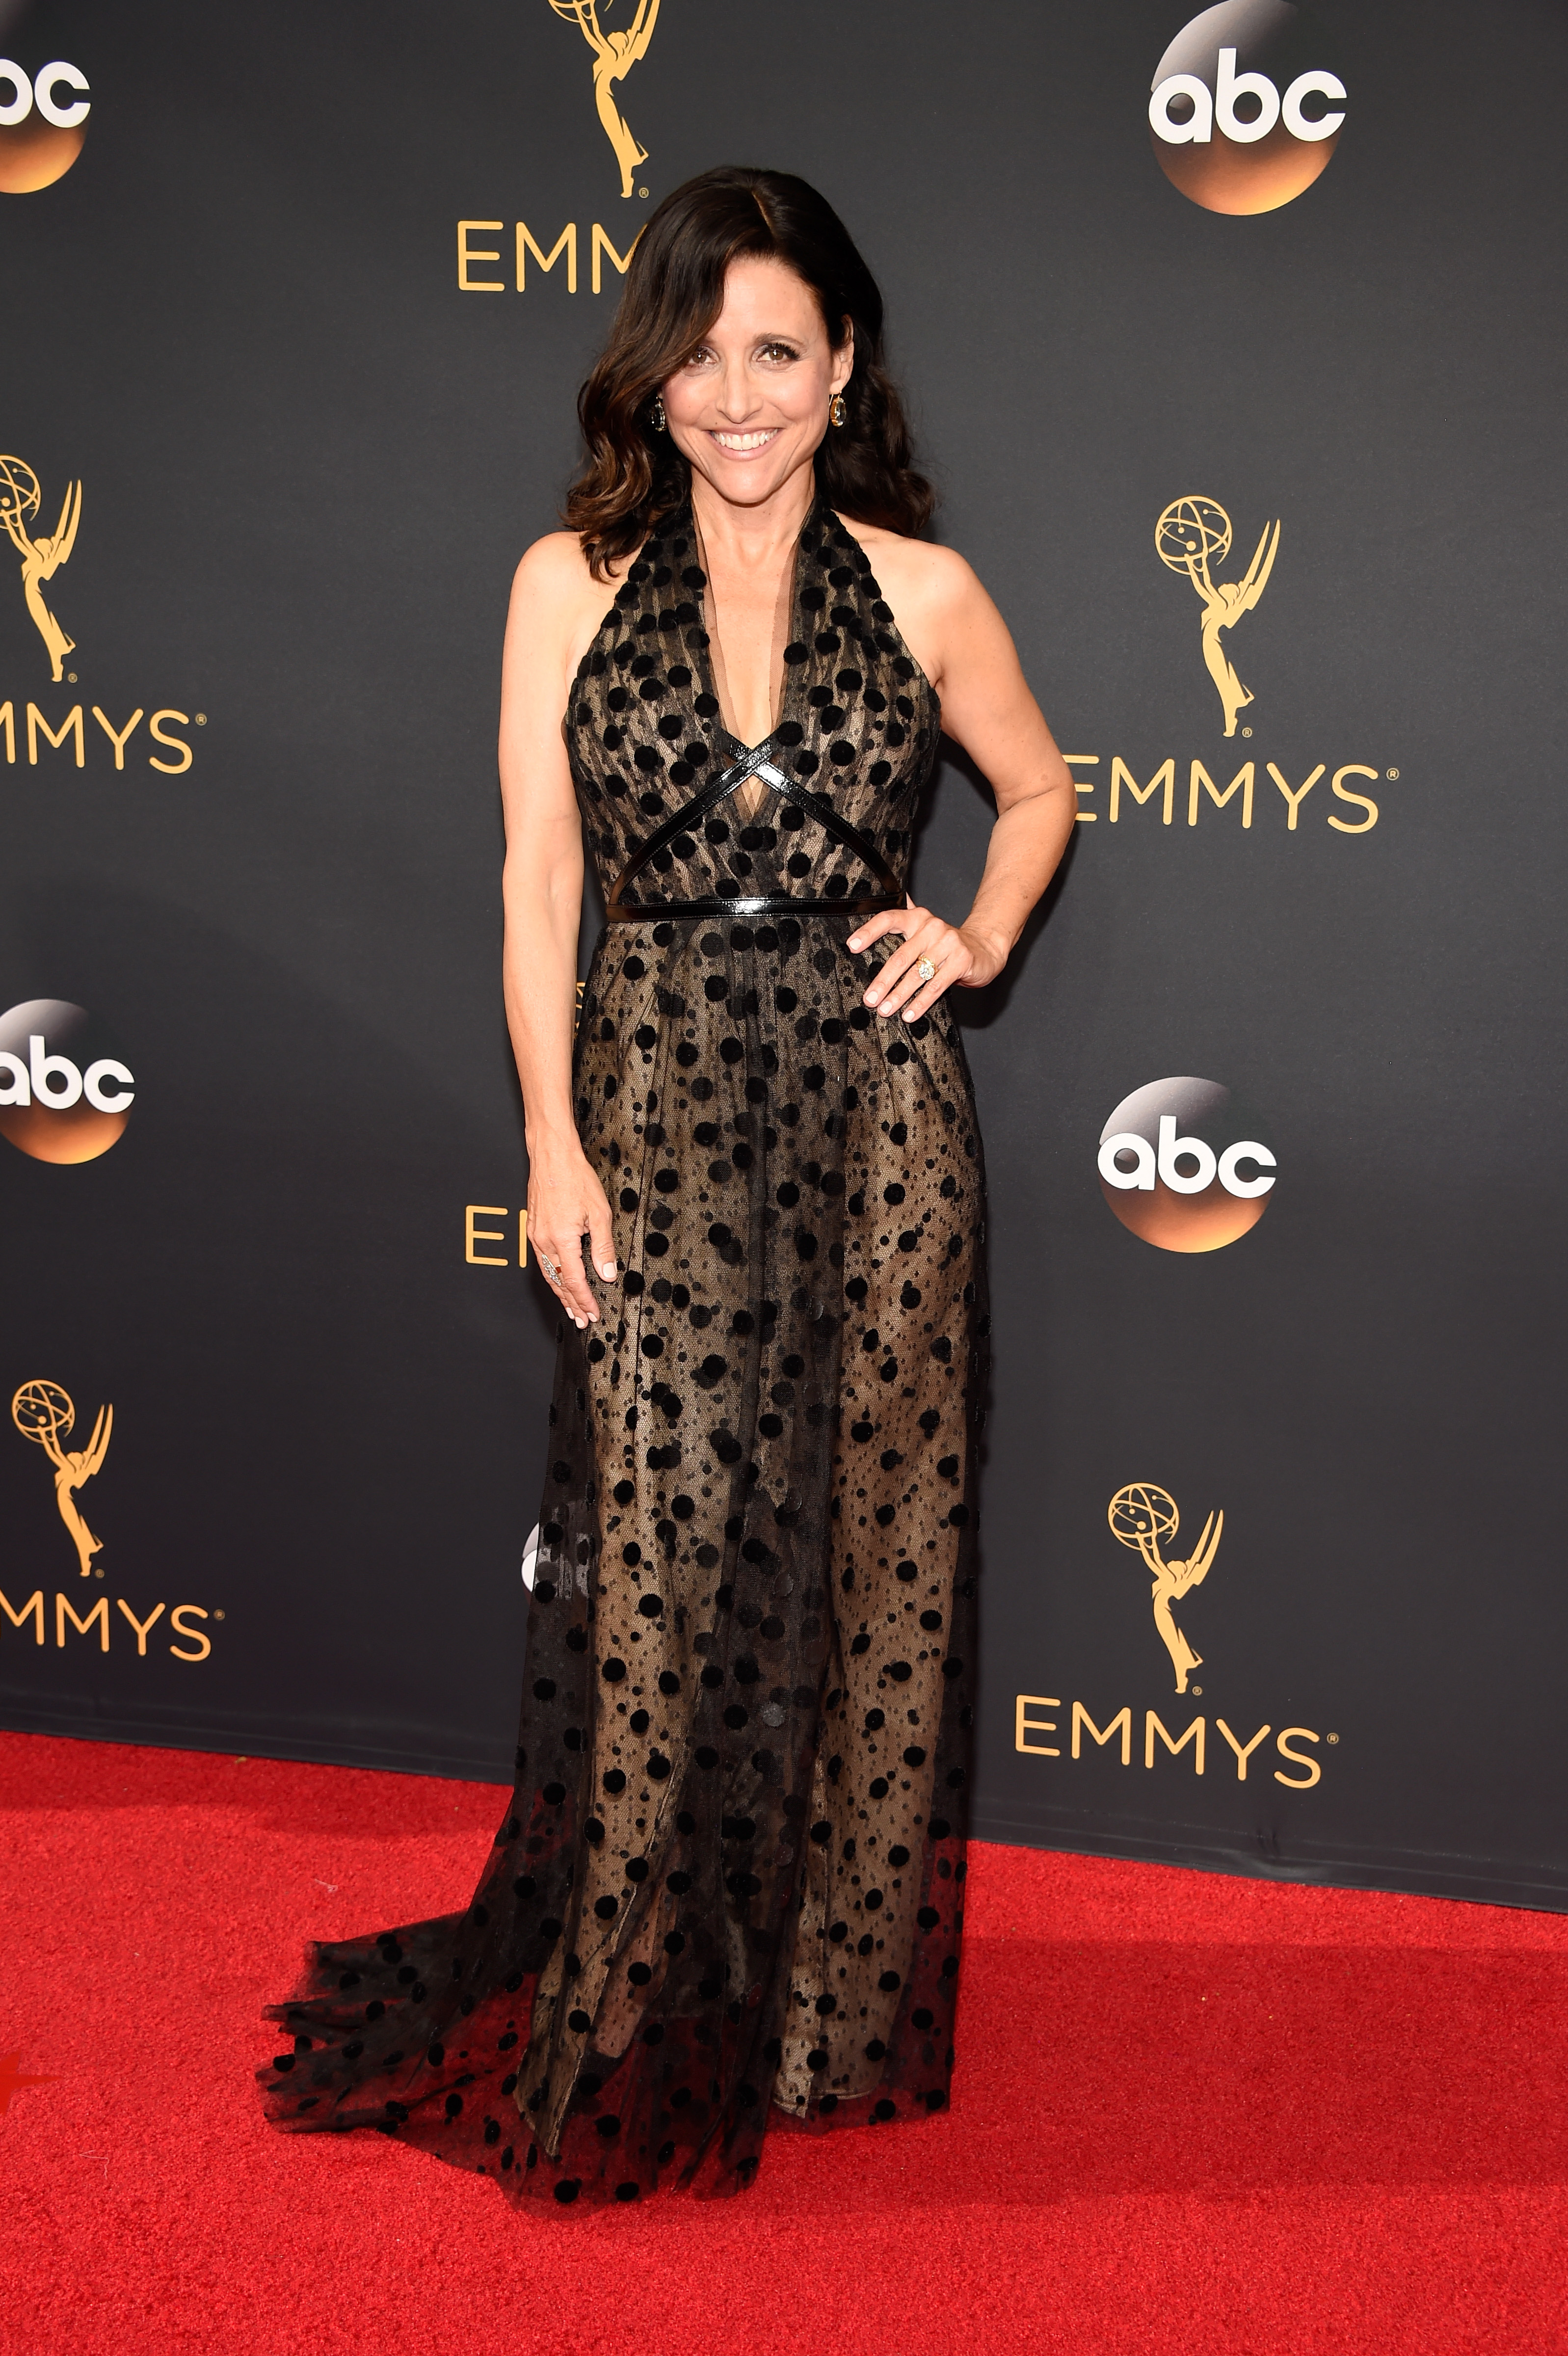 Julia Louis-Dreyfus arrives at the 68th Annual Primetime Emmy Awards at Microsoft Theater on Sept. 18, 2016 in Los Angeles.